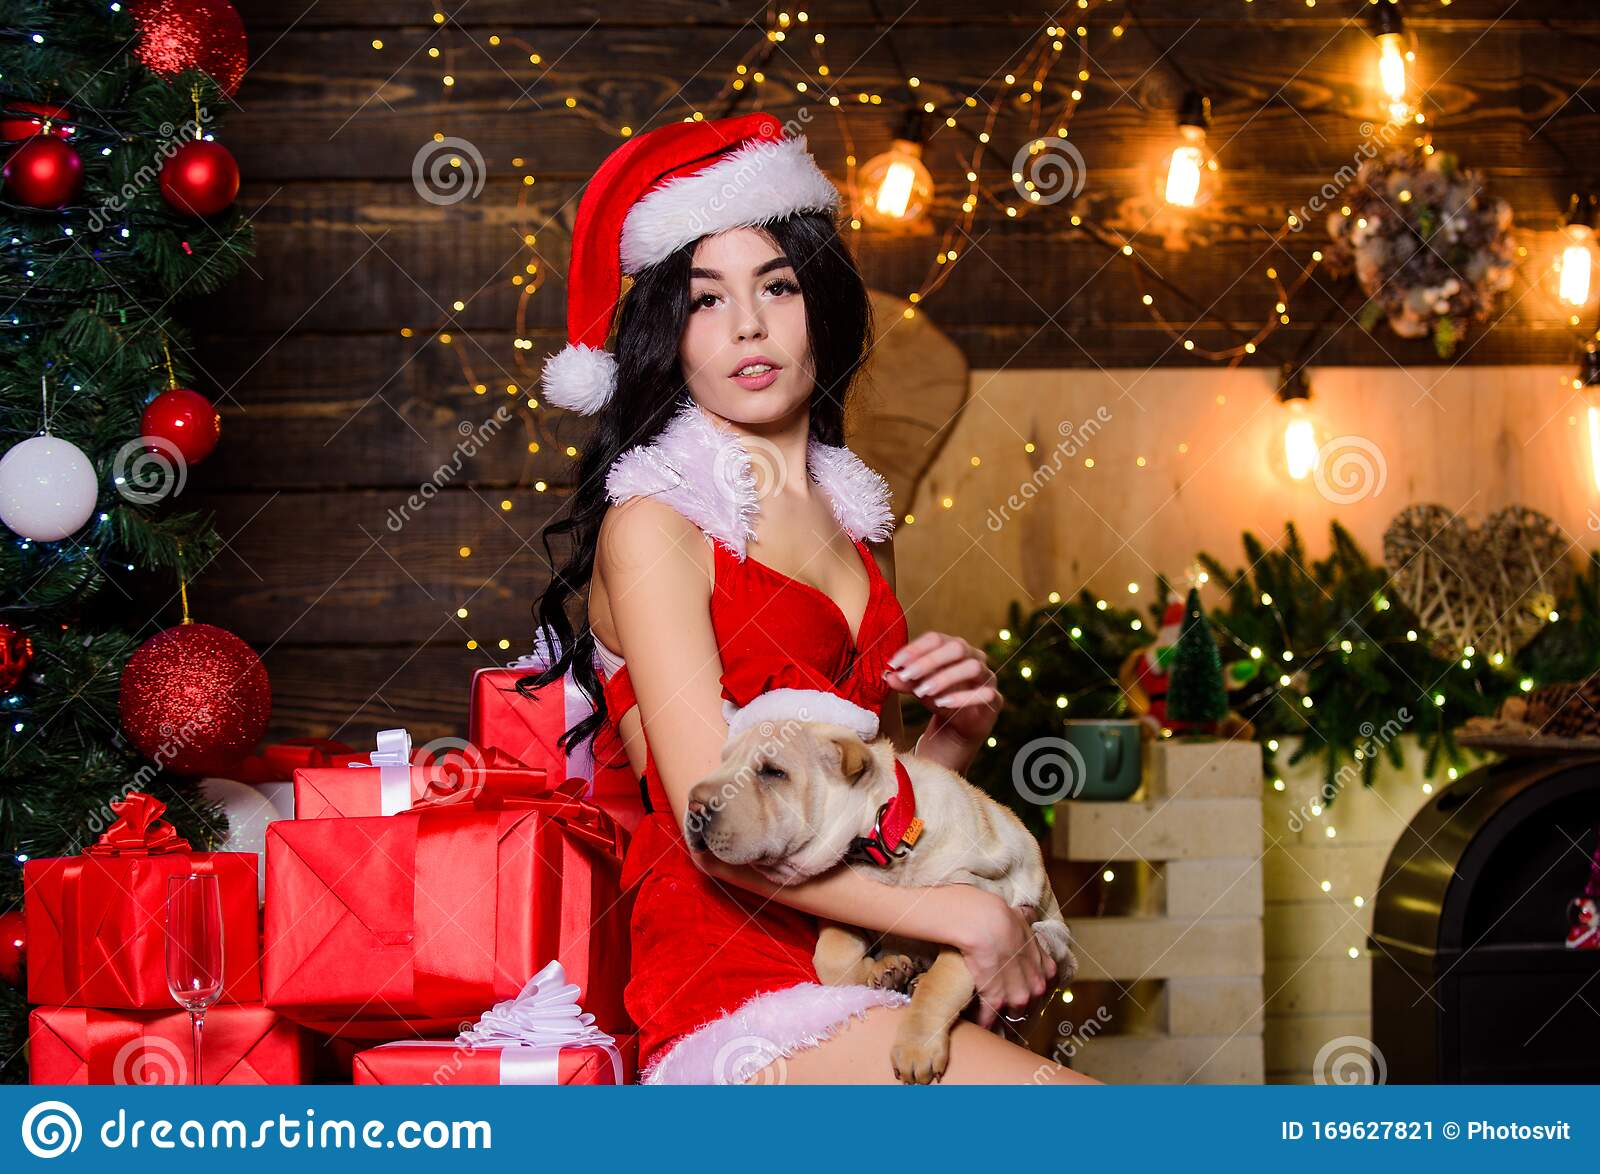 Sexy Xmas Pictures